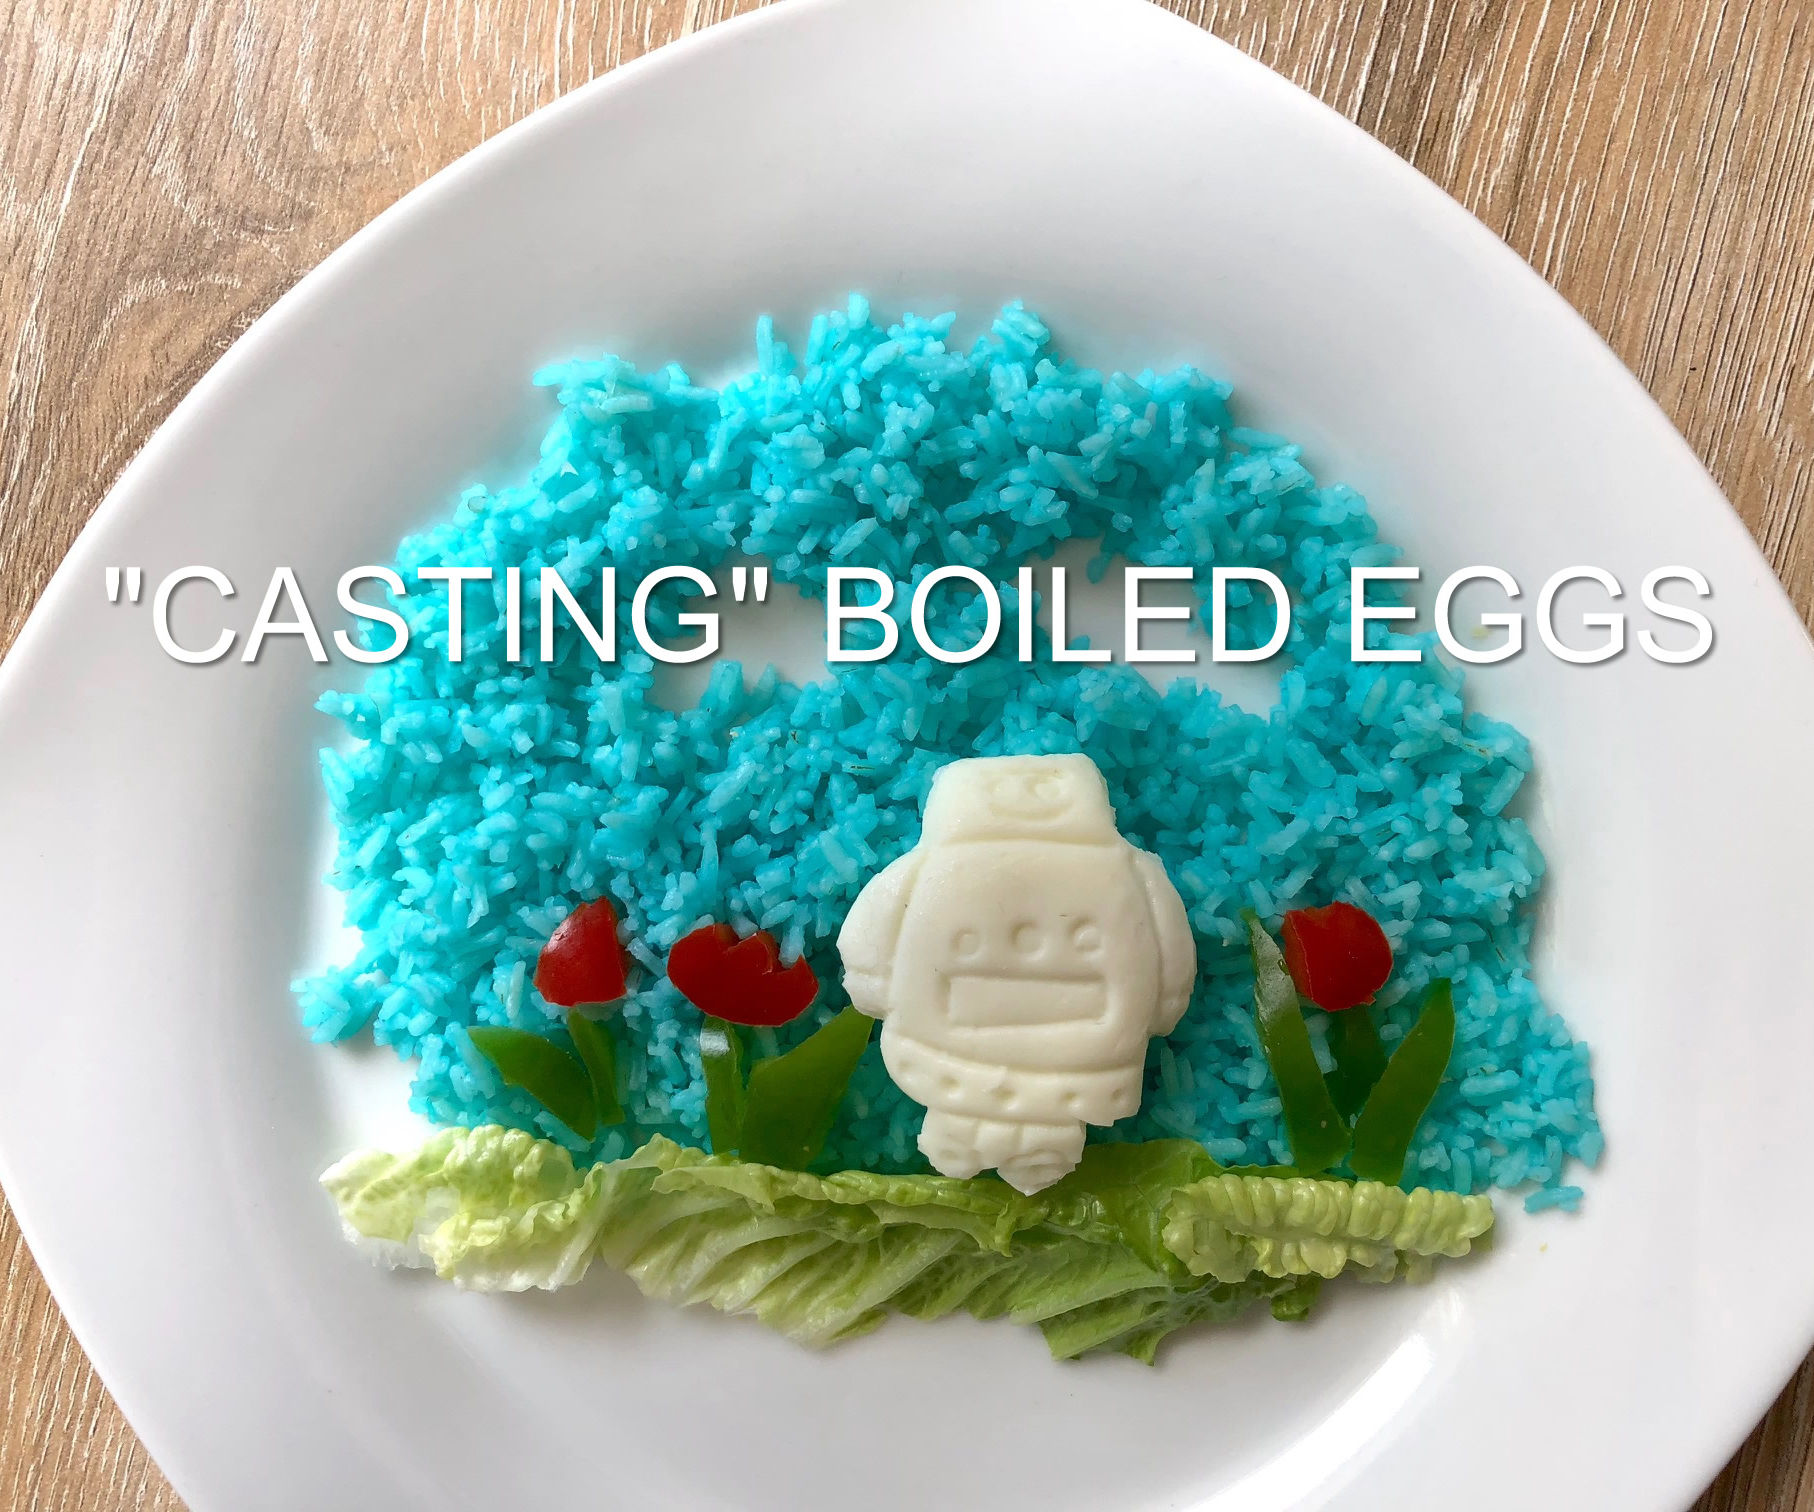 Make a Mold to Cast Boiled Eggs